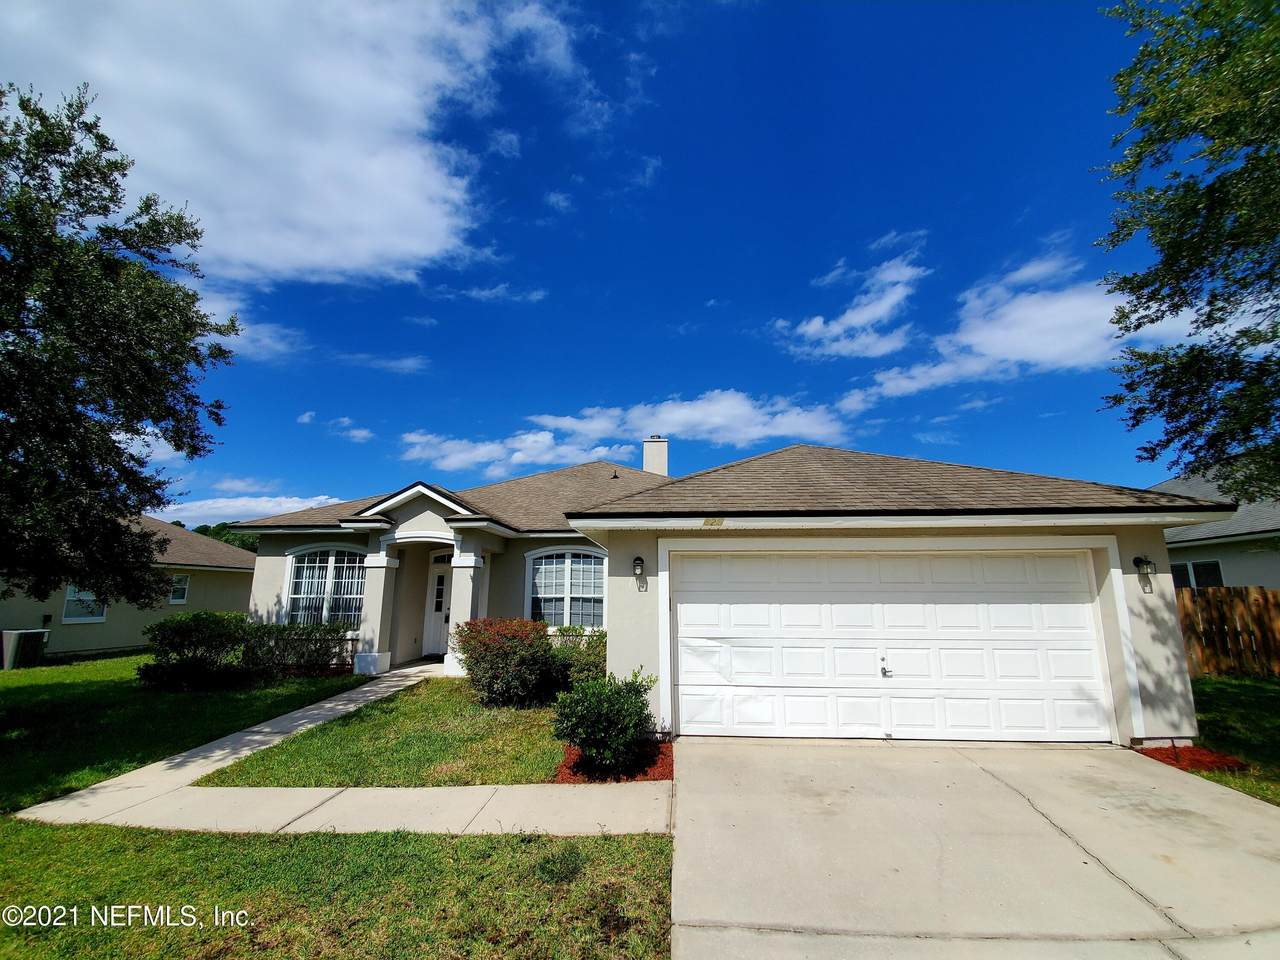 825 Lord Nelson Blvd - Photo 1